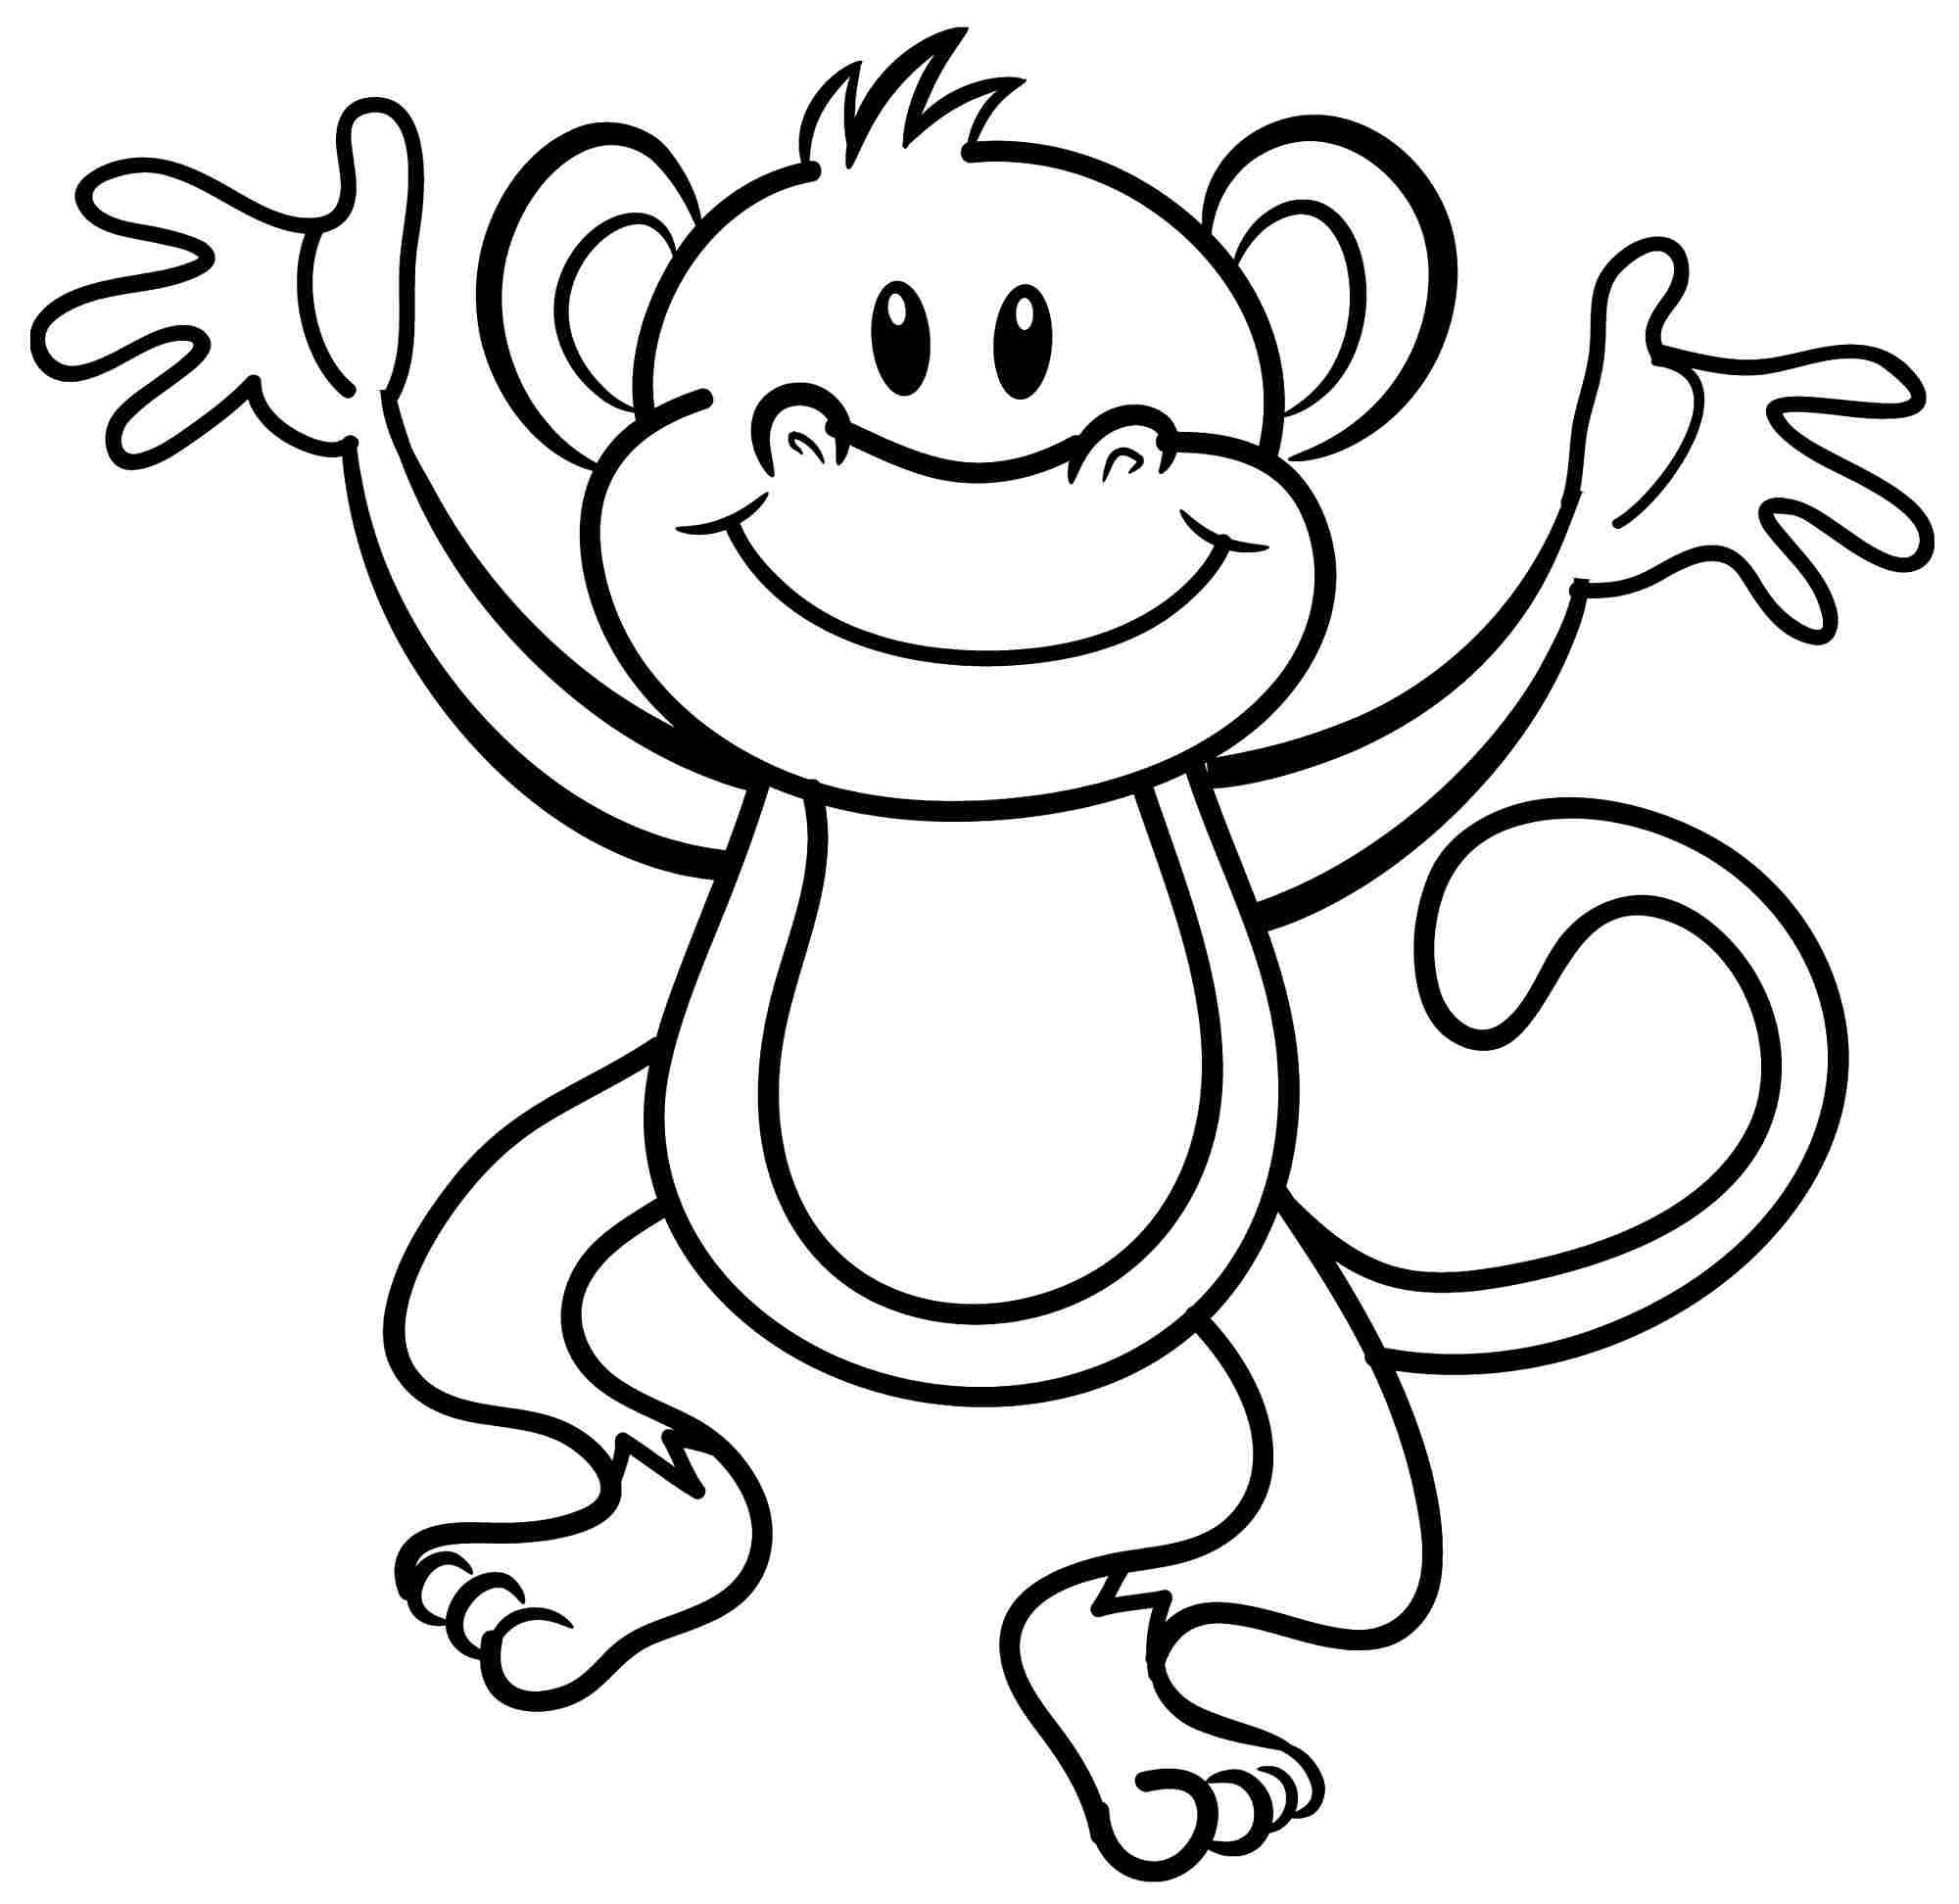 Colouring Monkey Clipart Best Free Printable Monkey Coloring Pages